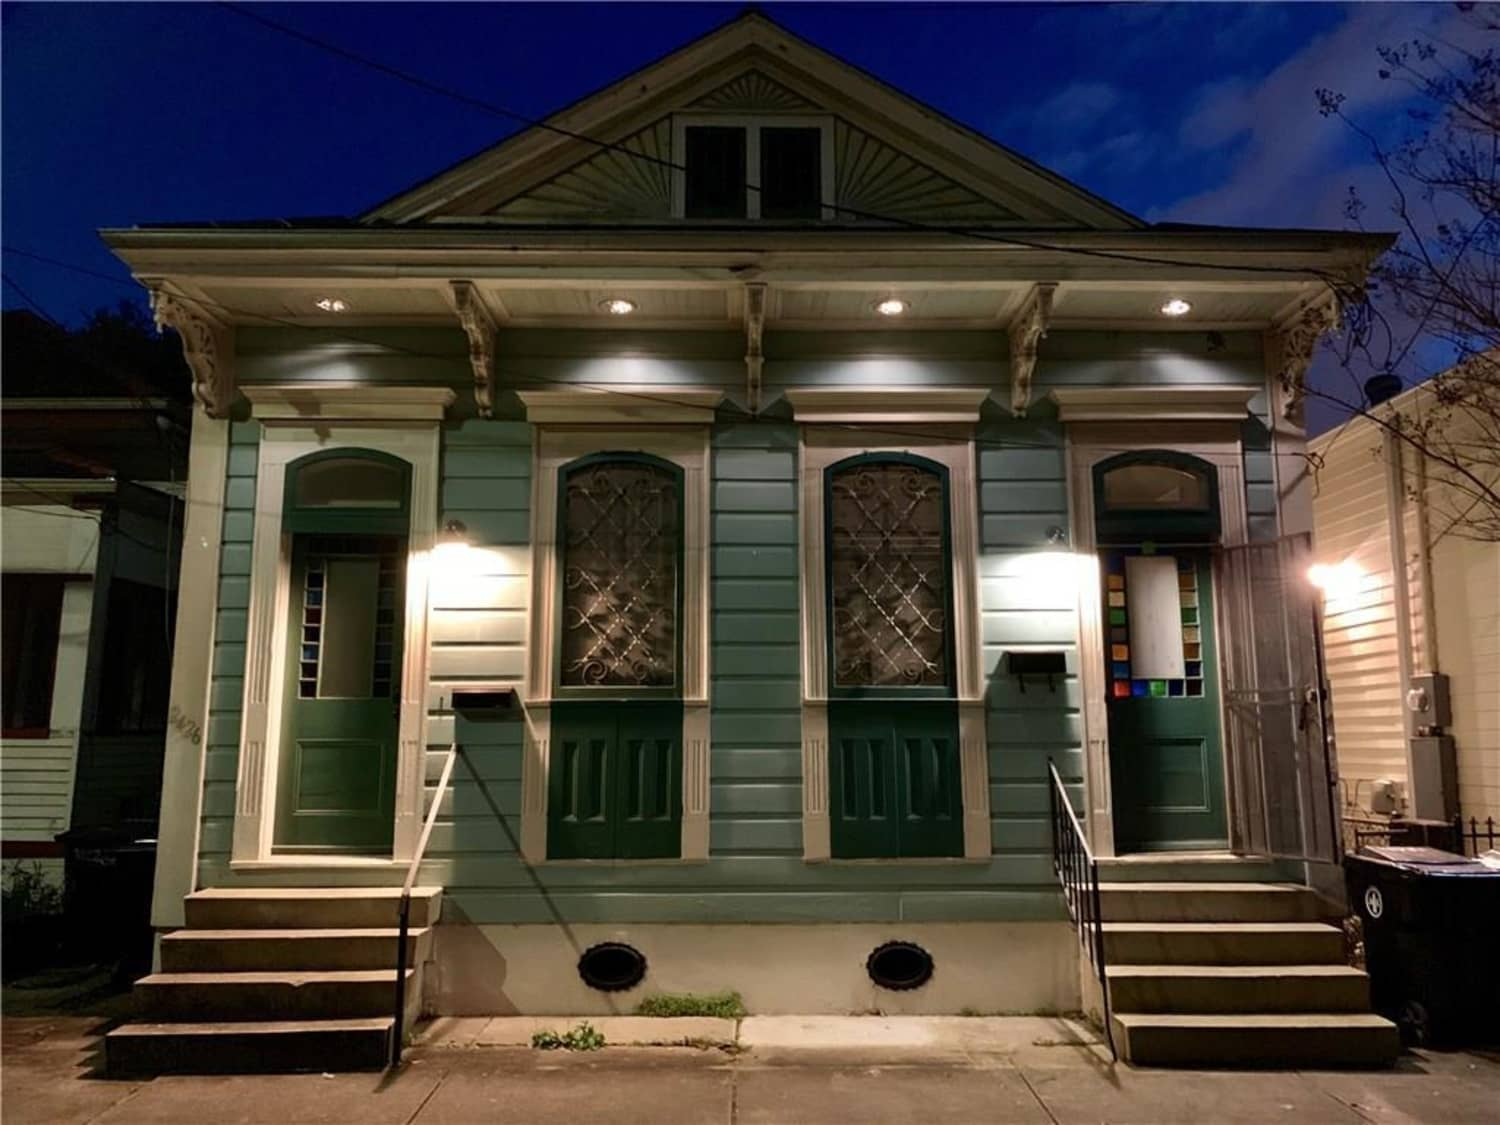 Look Inside This Double Shotgun House for Sale in New Orleans—It's a Kaleidoscope of Color